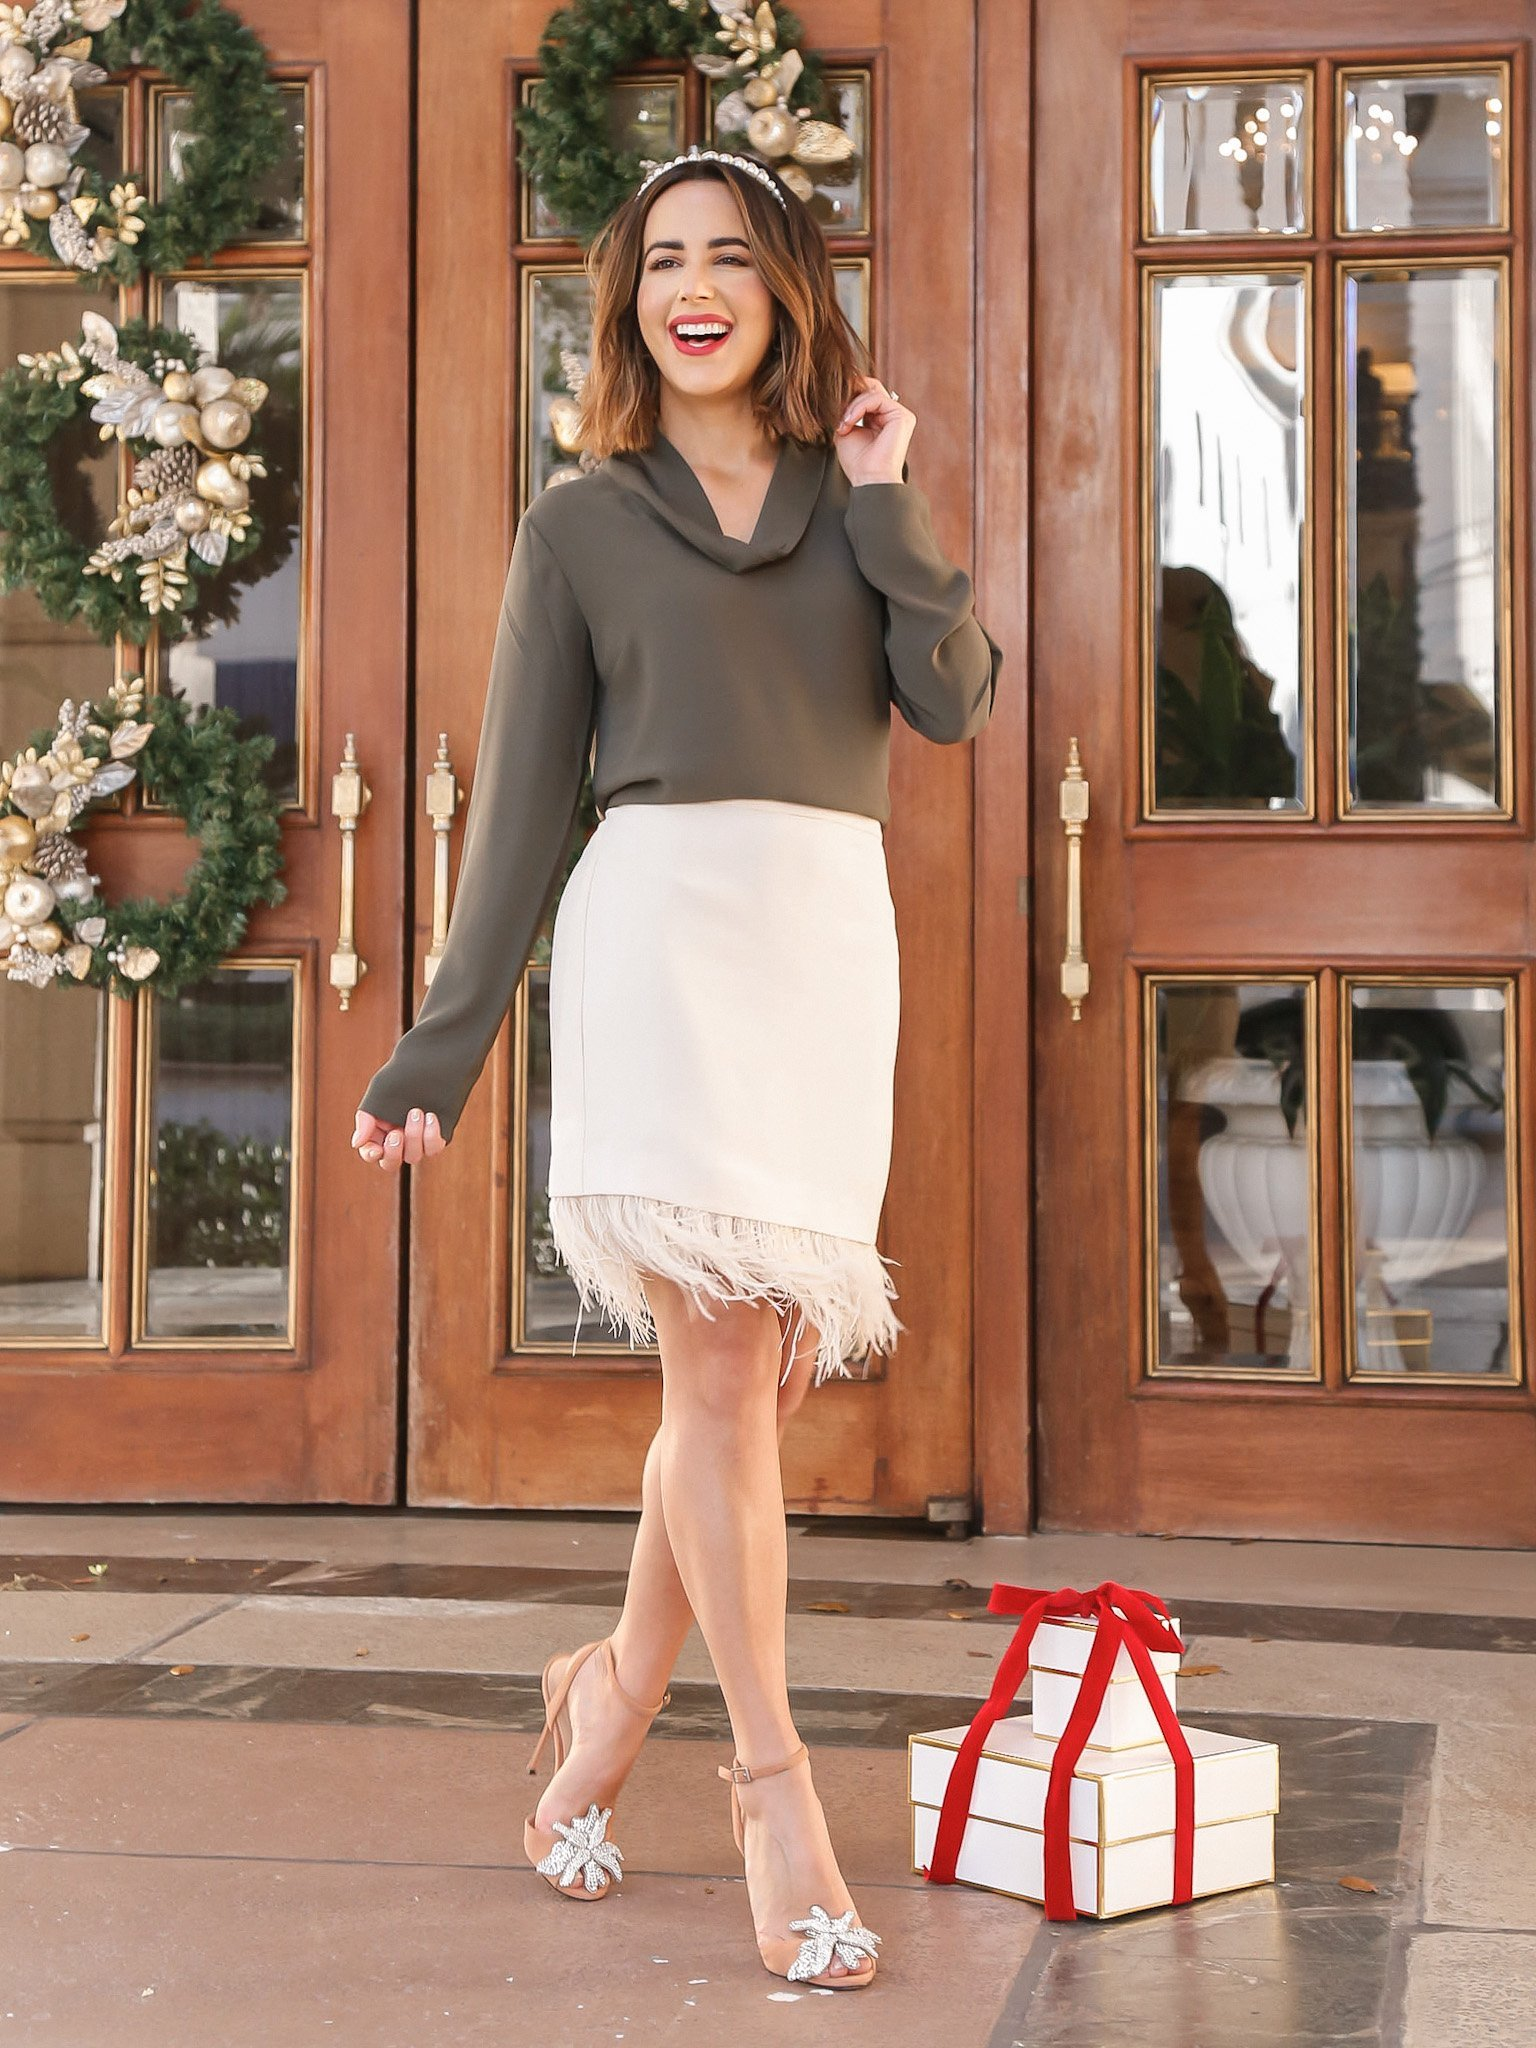 kelly saks wearing holiday outfit featuring green silk blouse and ivory skirt with feathers.